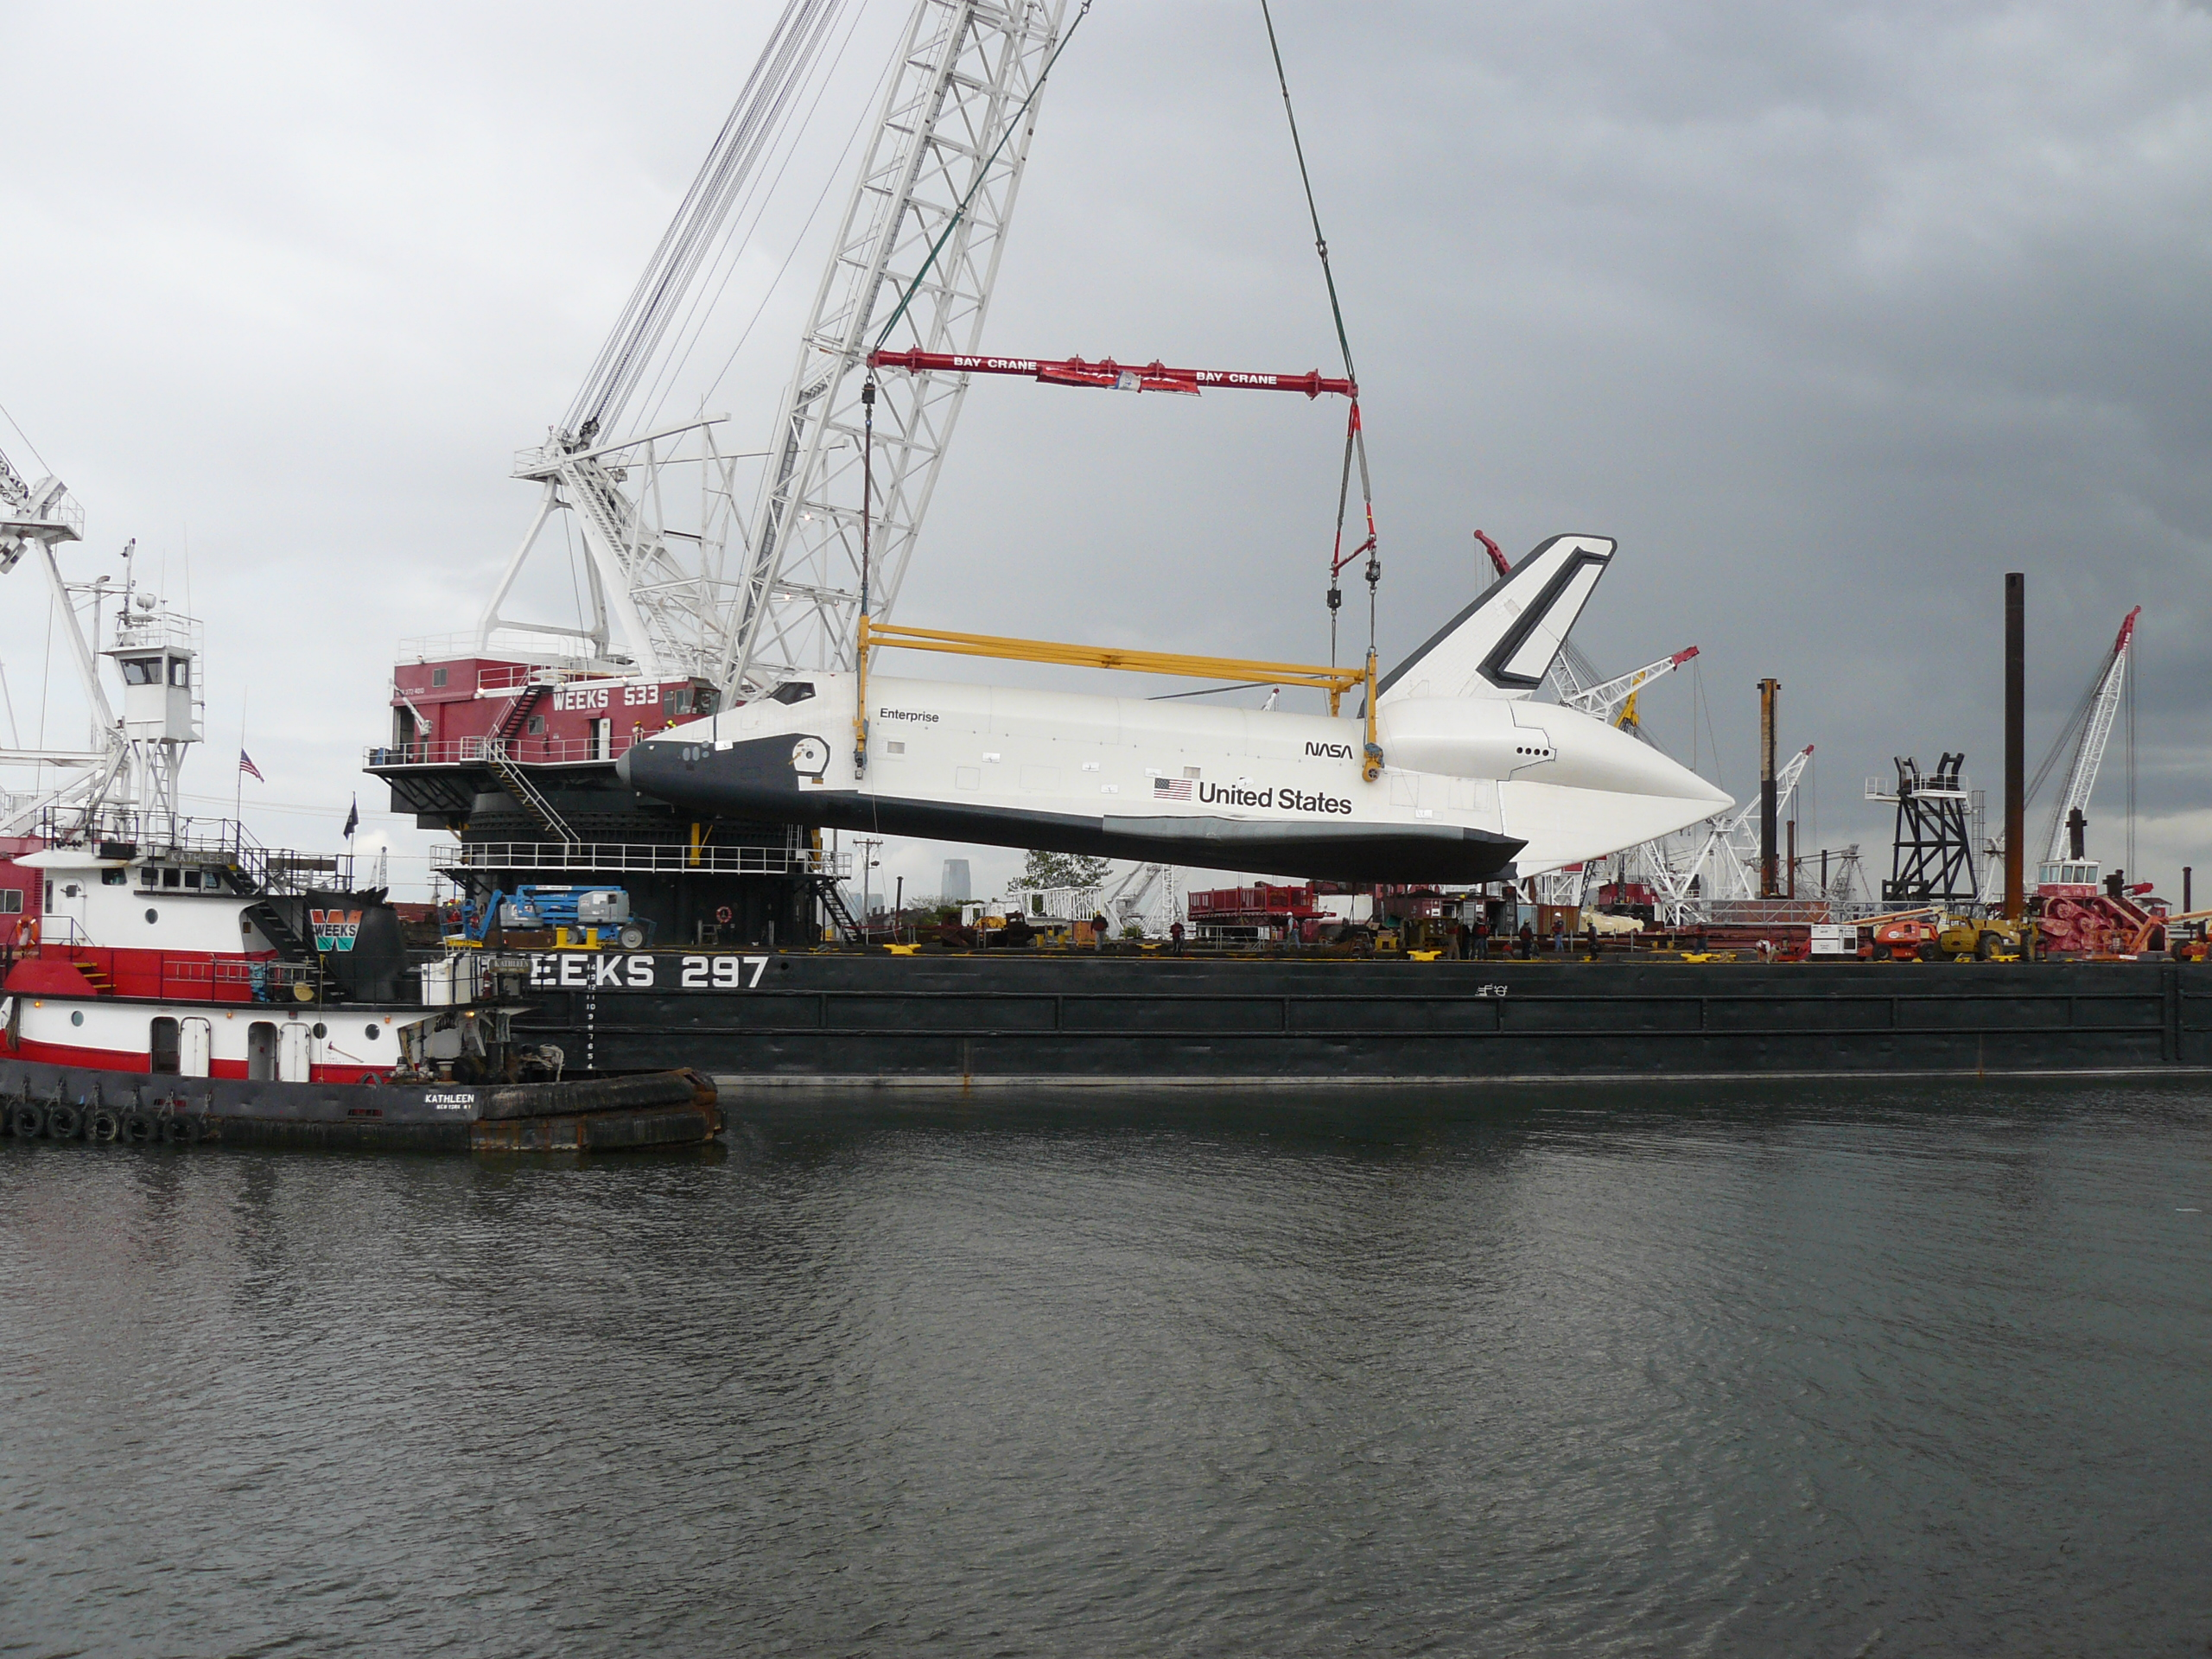 Enterprise Being Hoisted by Crane